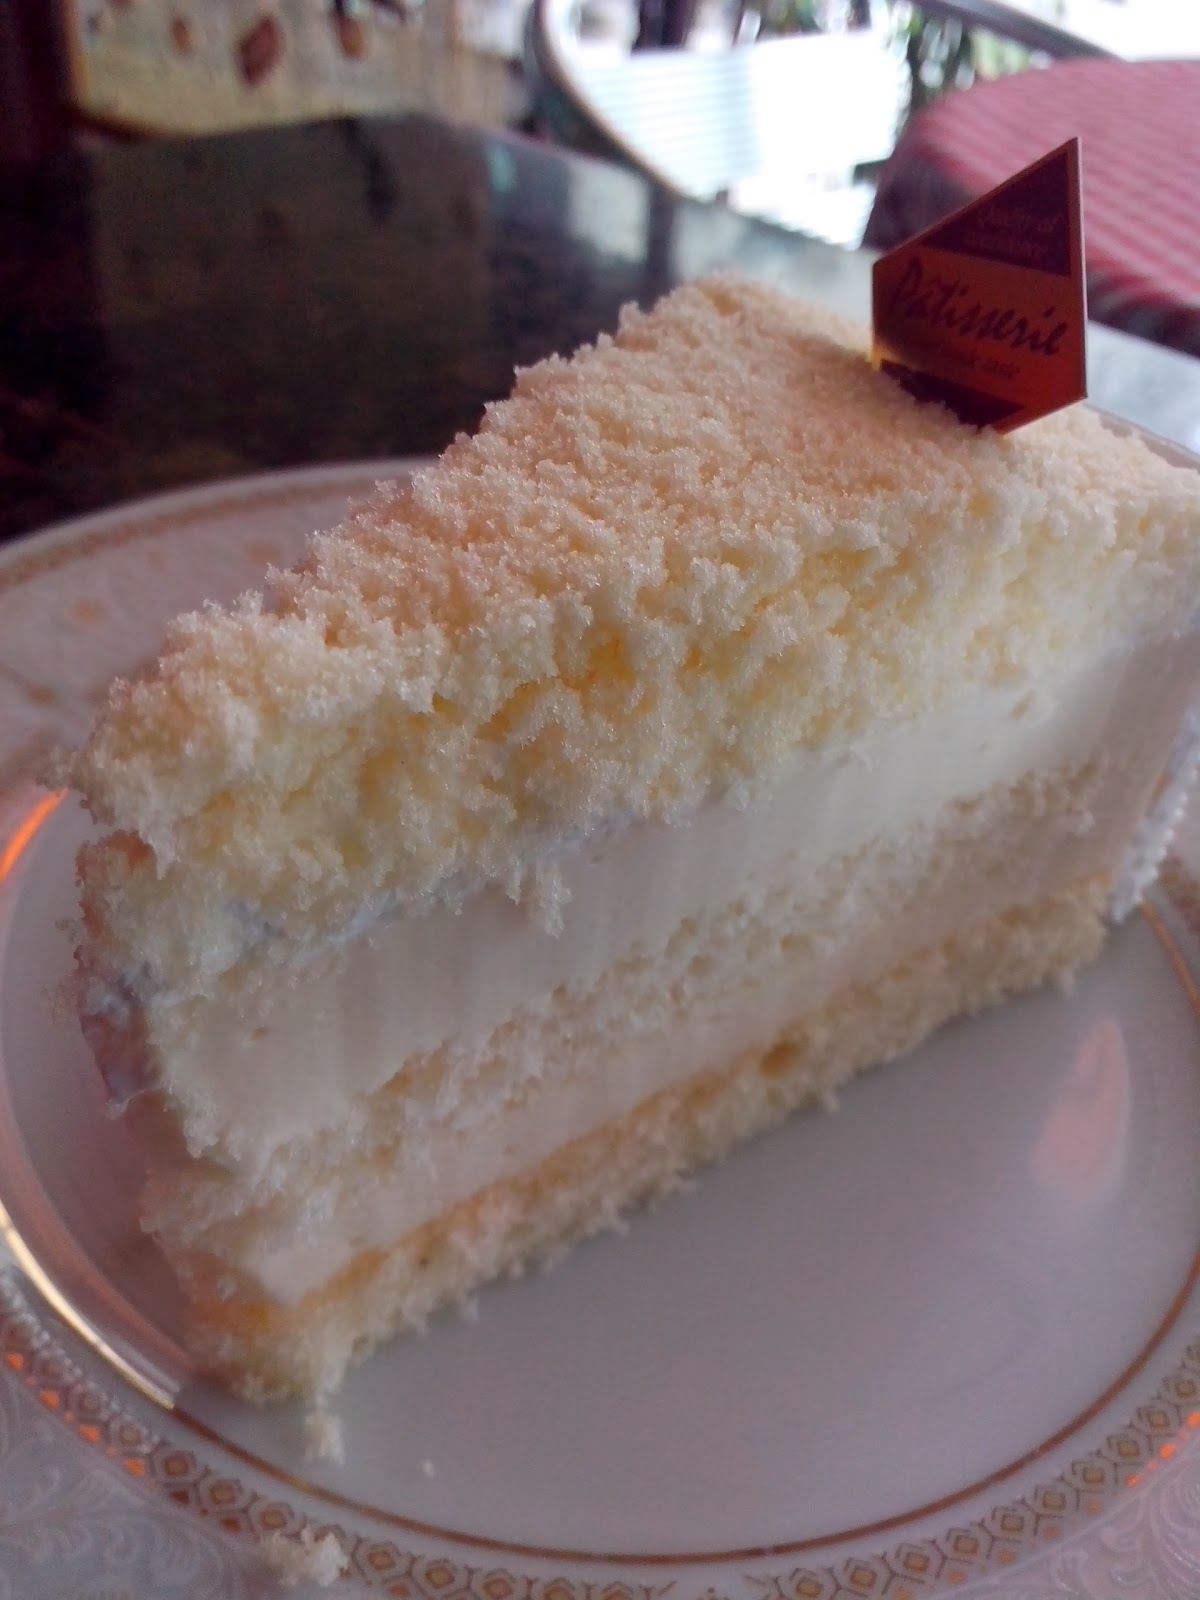 #032eatdrink, pastries, cakes, japanese cakes and pastries